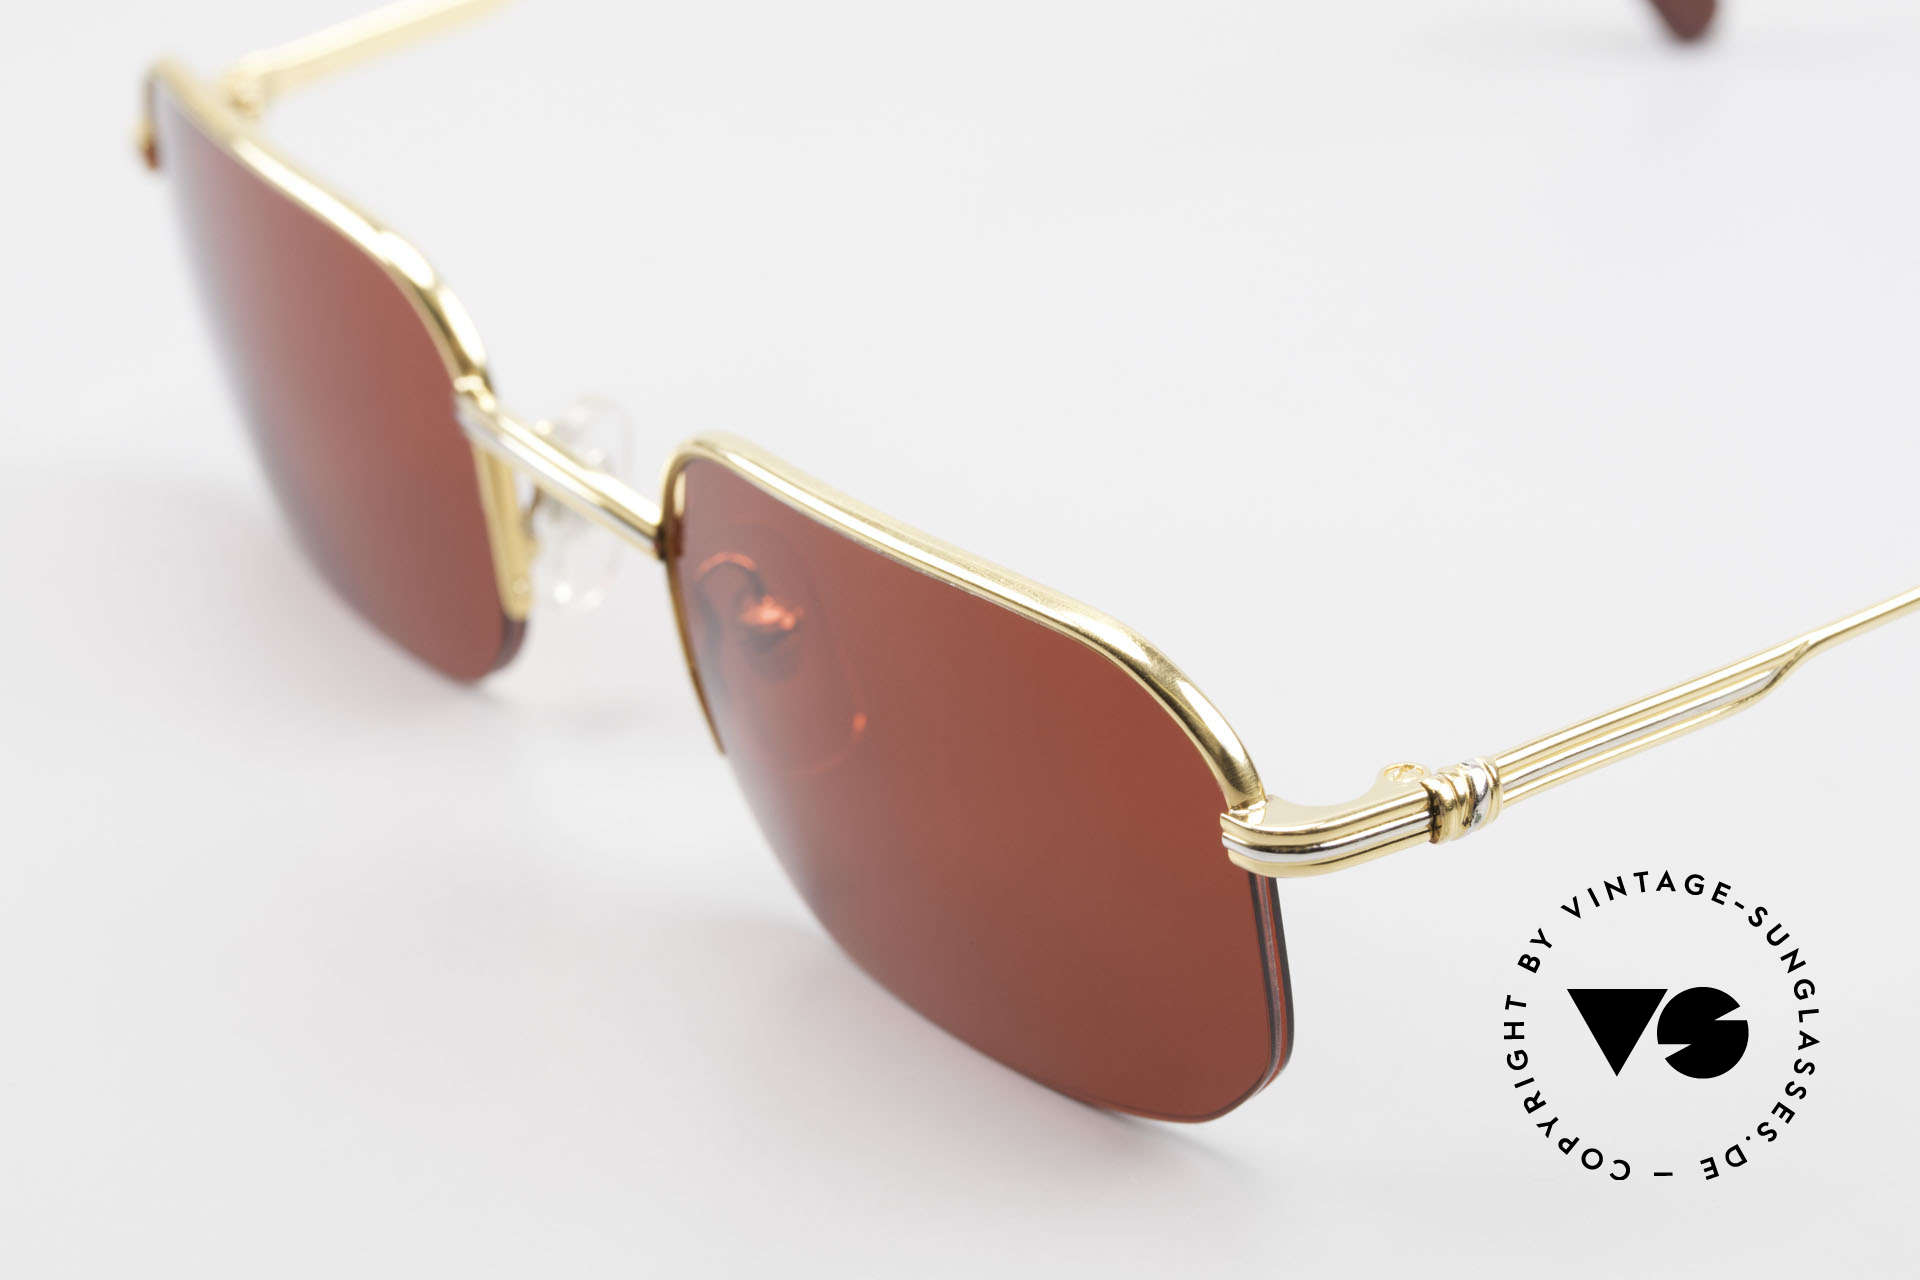 Cartier Broadway Semi Rimless Sunglasses 3D Red, unworn luxury frame comes with a CHANEL hard case, Made for Men